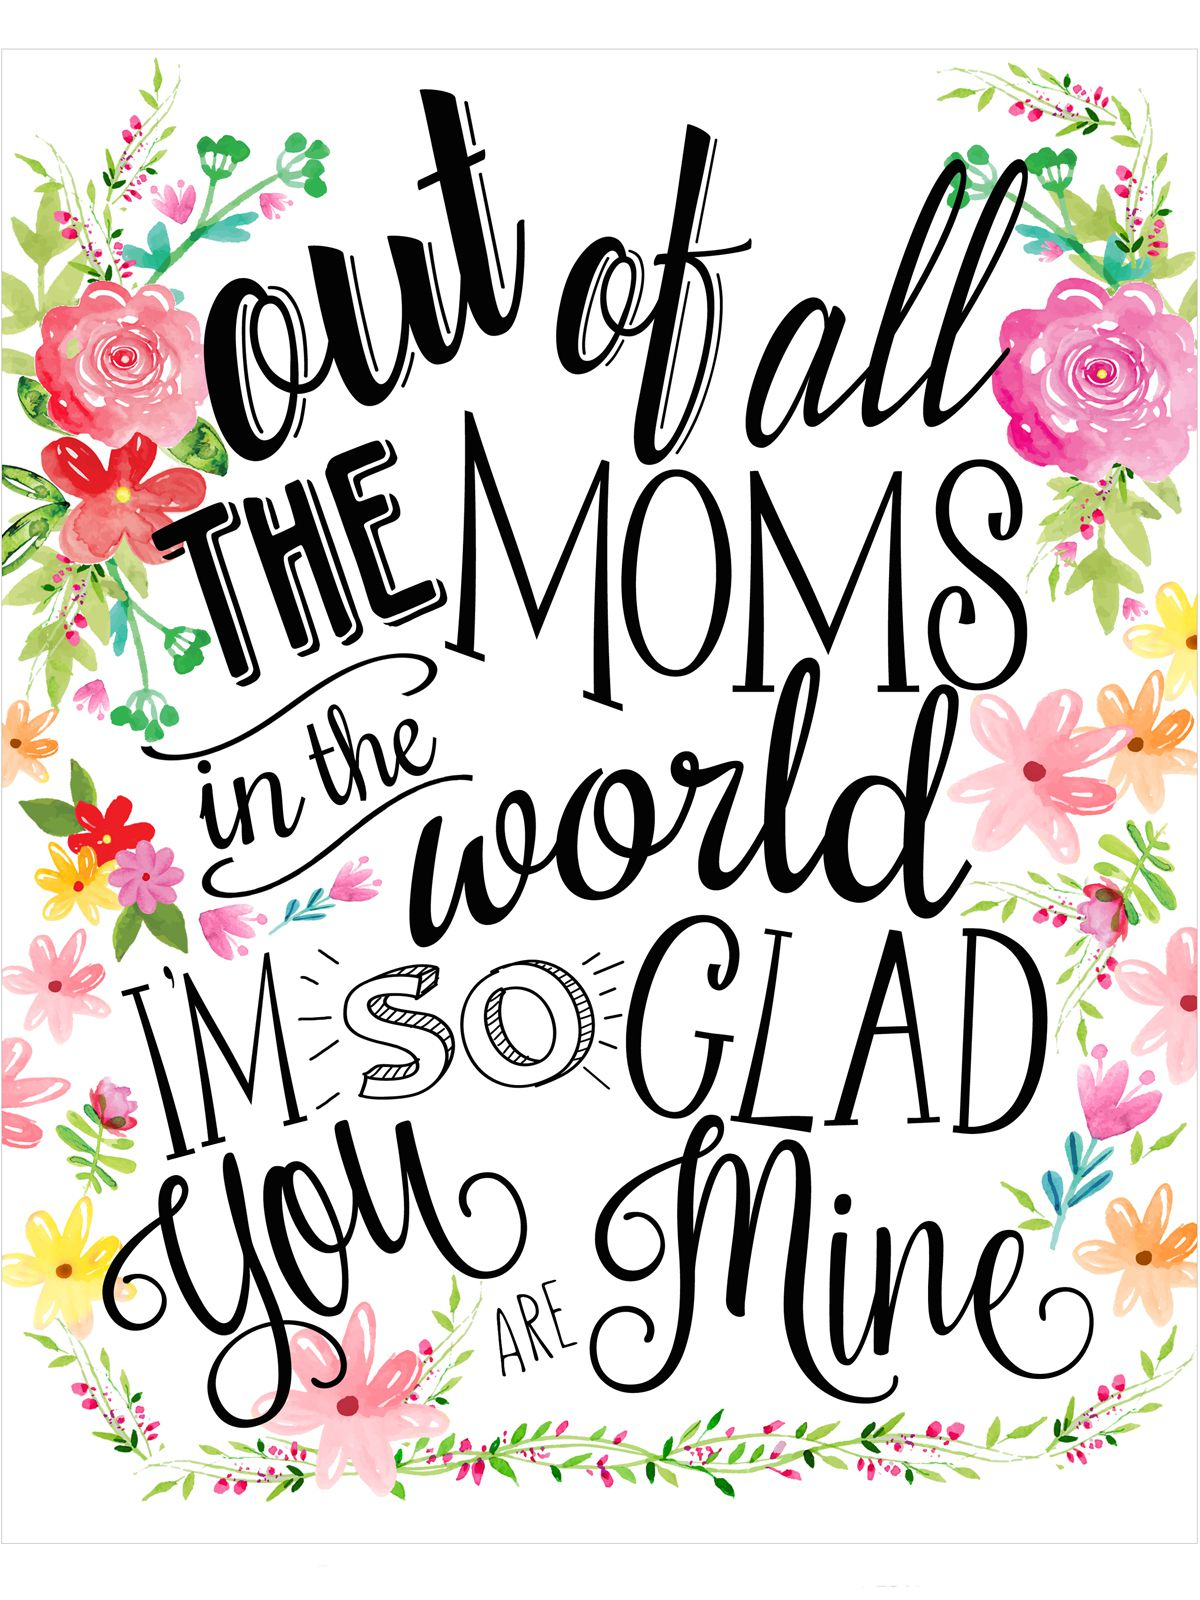 18 Mothers Day Cards - Free Printable Mother's Day Cards - Free Printable Mothers Day Gifts